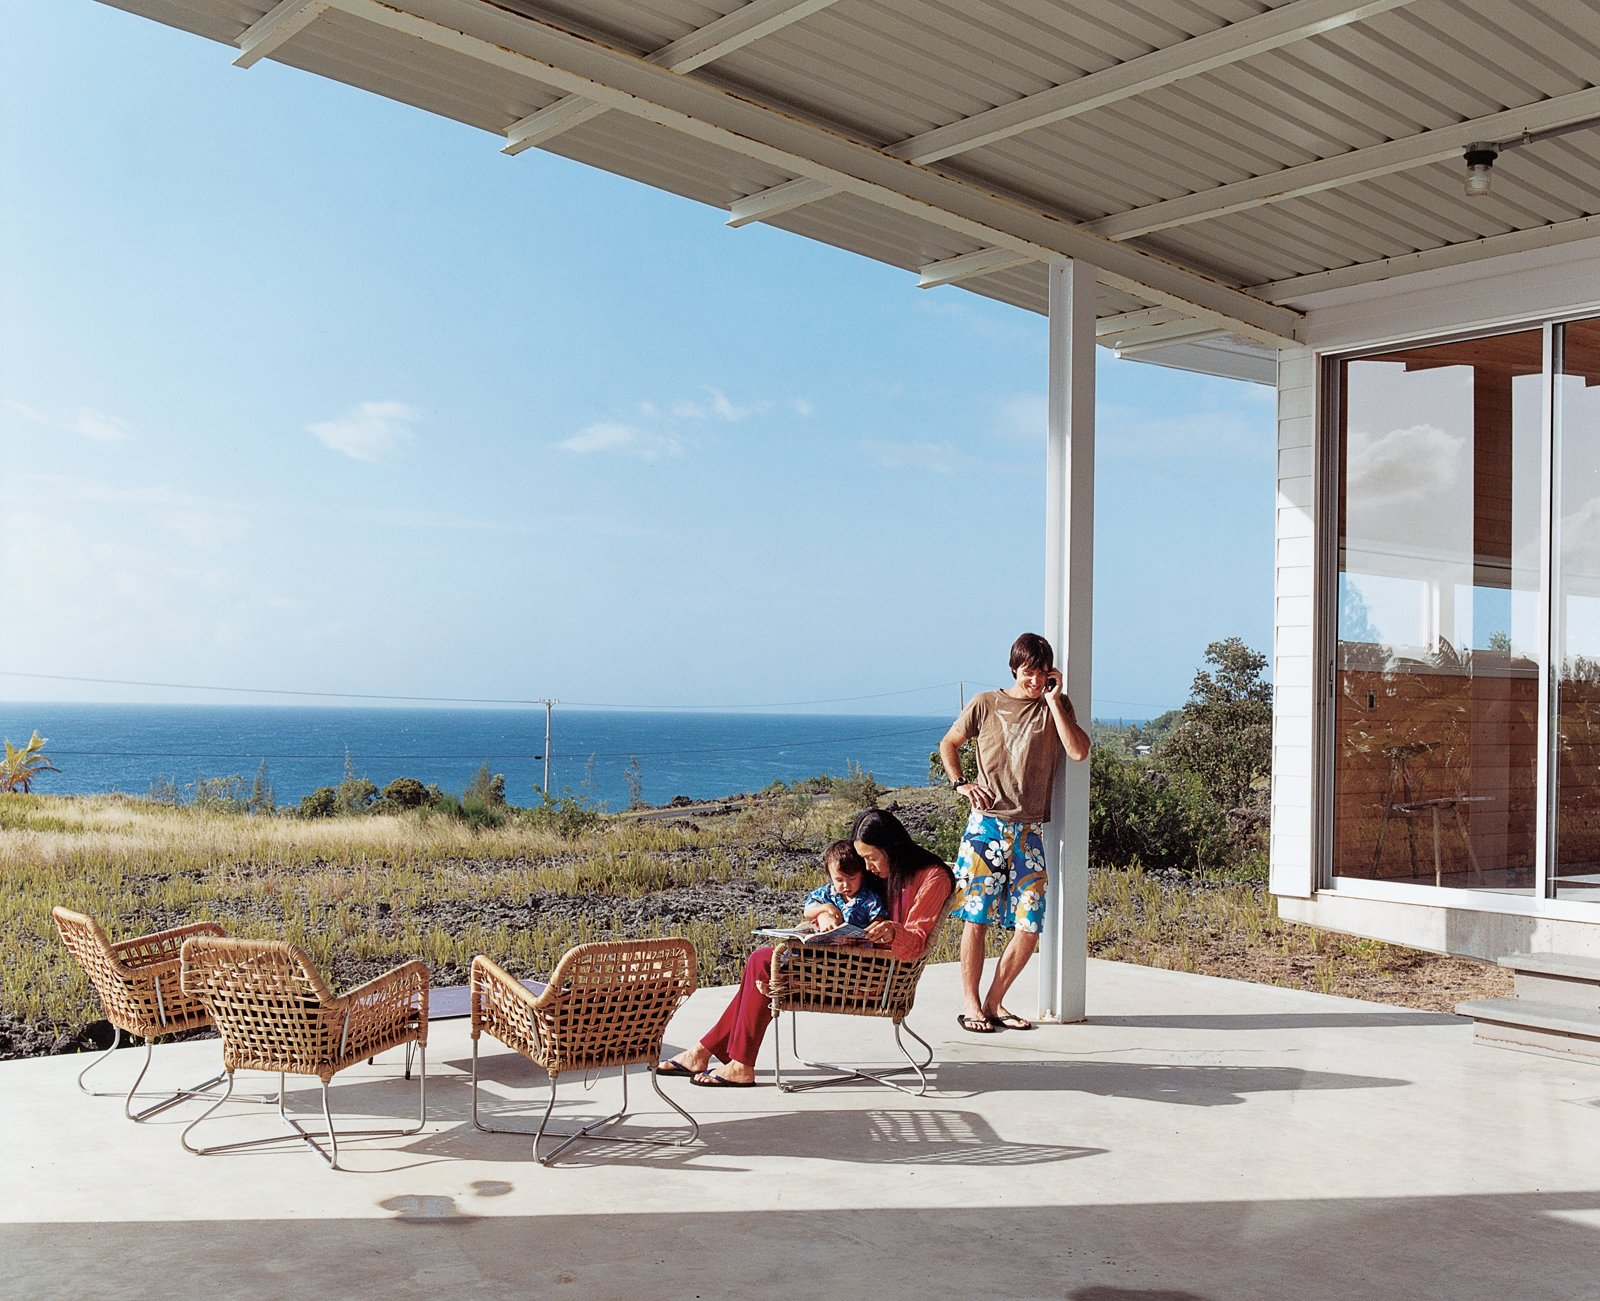 Outdoor, Large Patio, Porch, Deck, and Concrete Patio, Porch, Deck Architect Craig Steely designed this house for himself, his wife Cathy Liu, a painter, and their son, Zane, that looks out to the Pacific Ocean from a lava flow on the big island of Hawaii.  Best Photos from Go With the Flow